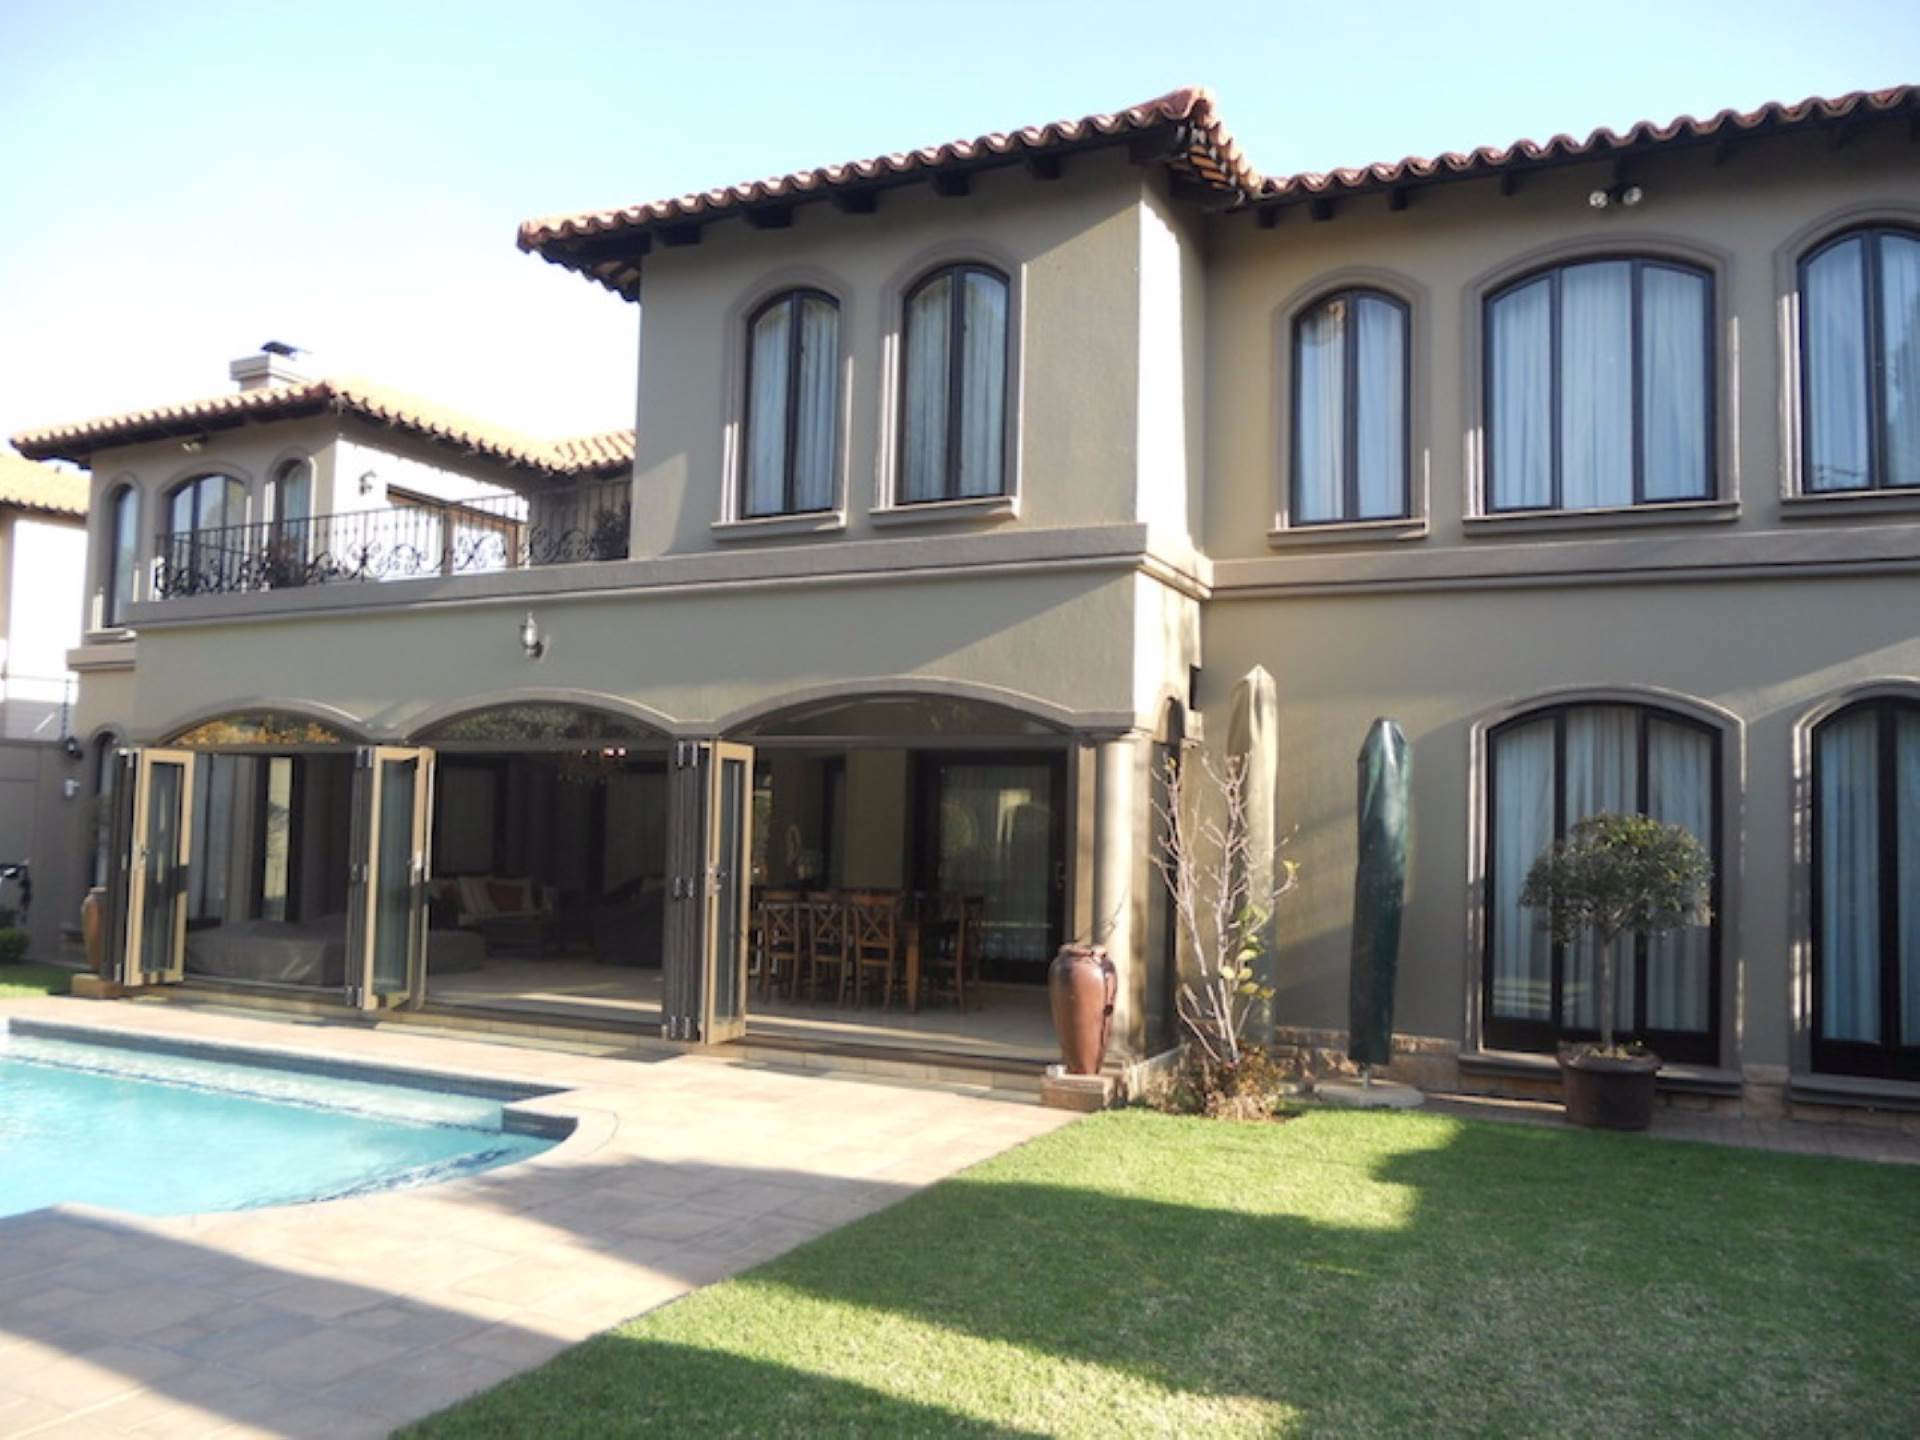 6 BedroomHouse To Rent In Bedfordview